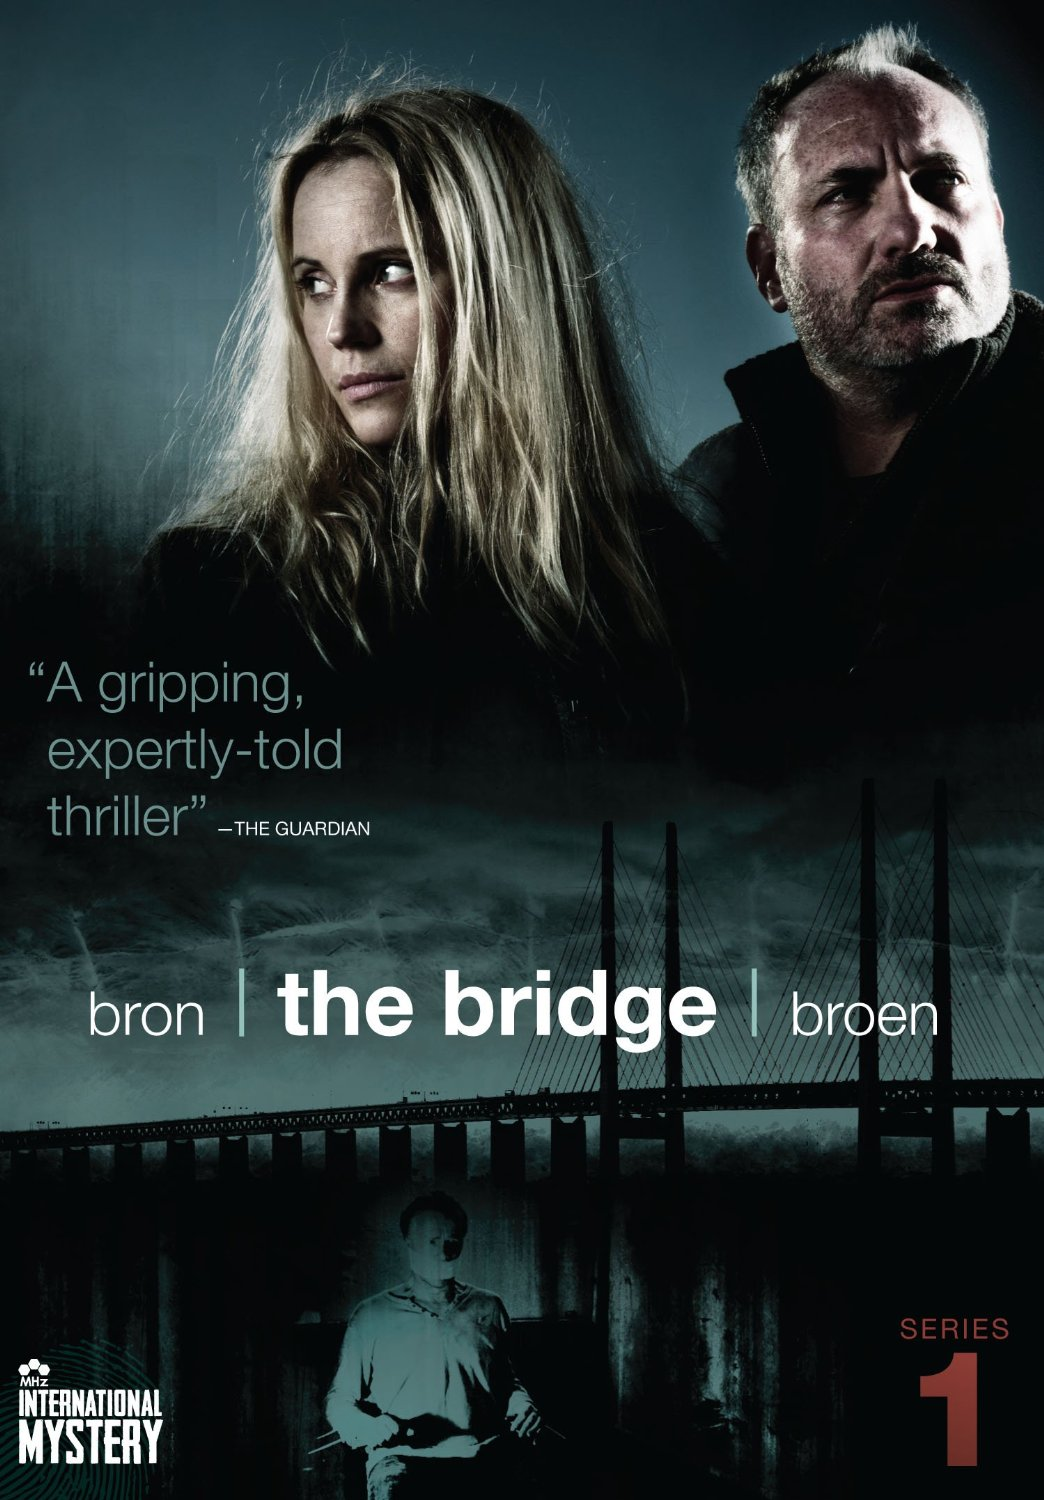 Bron/Broen / The Bridge (2011-) TV Series